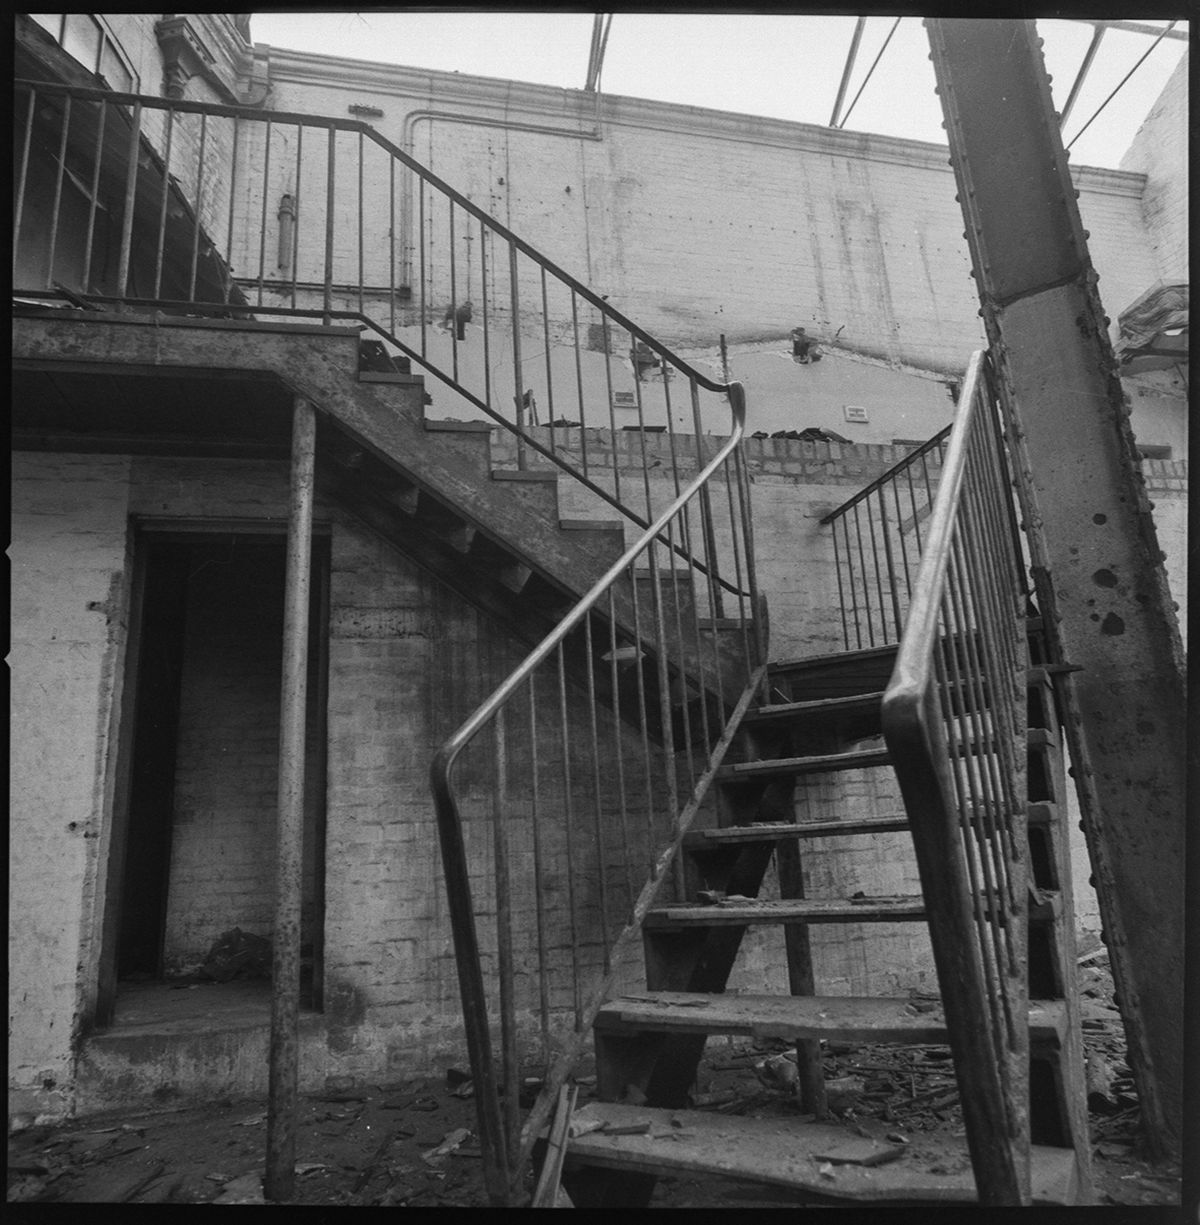 The stairs inside the shell of the empty building